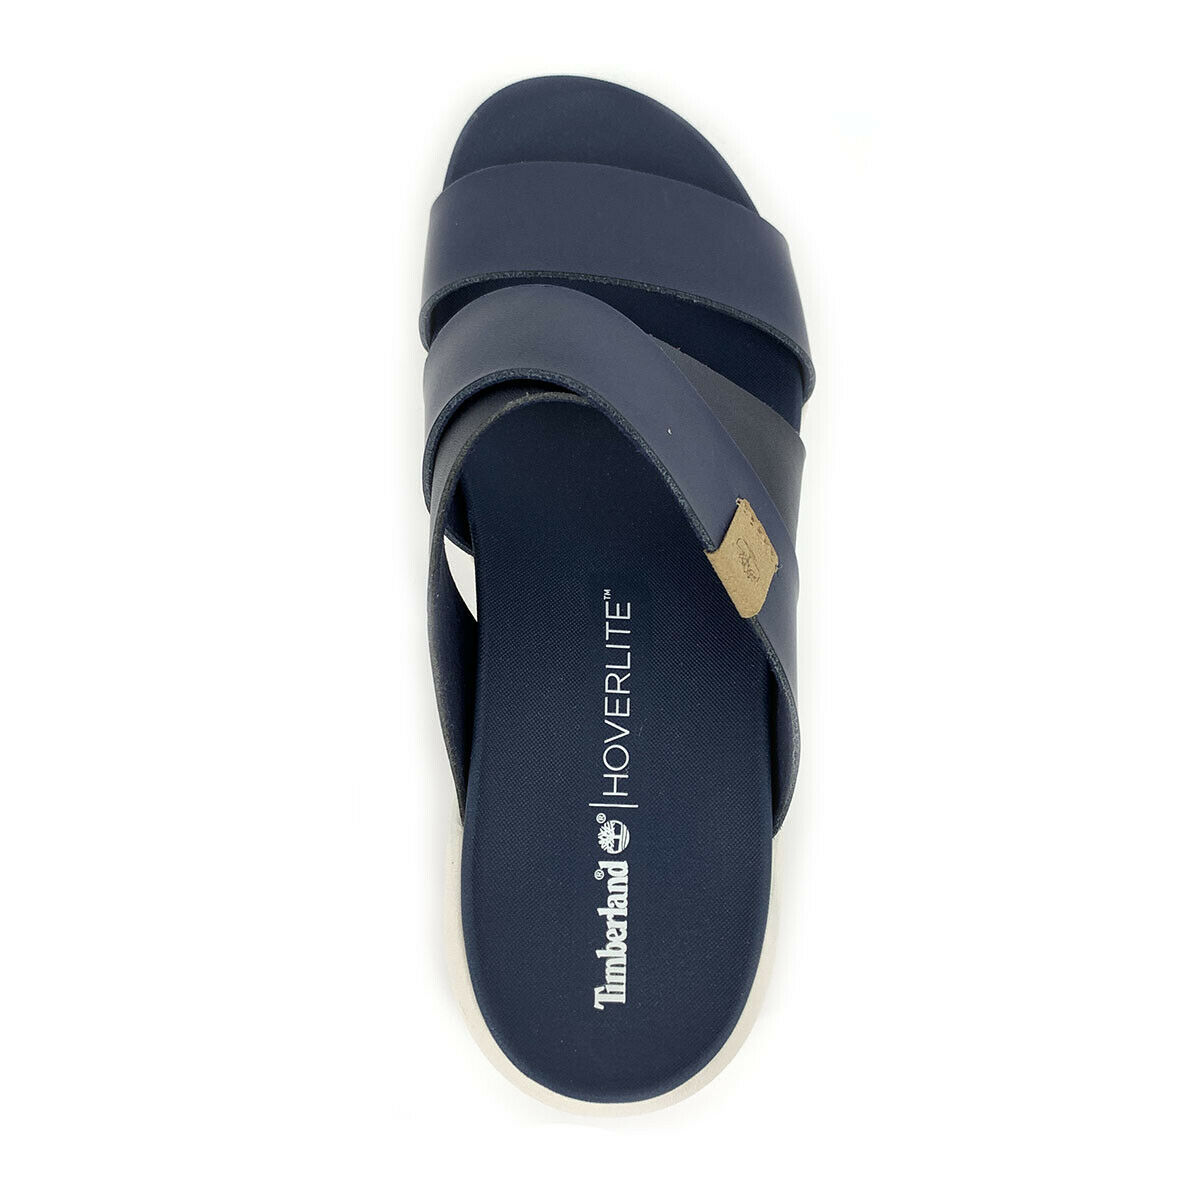 Timberland Women's Wilesport Navy Slip On Sandals A1XPH image 7